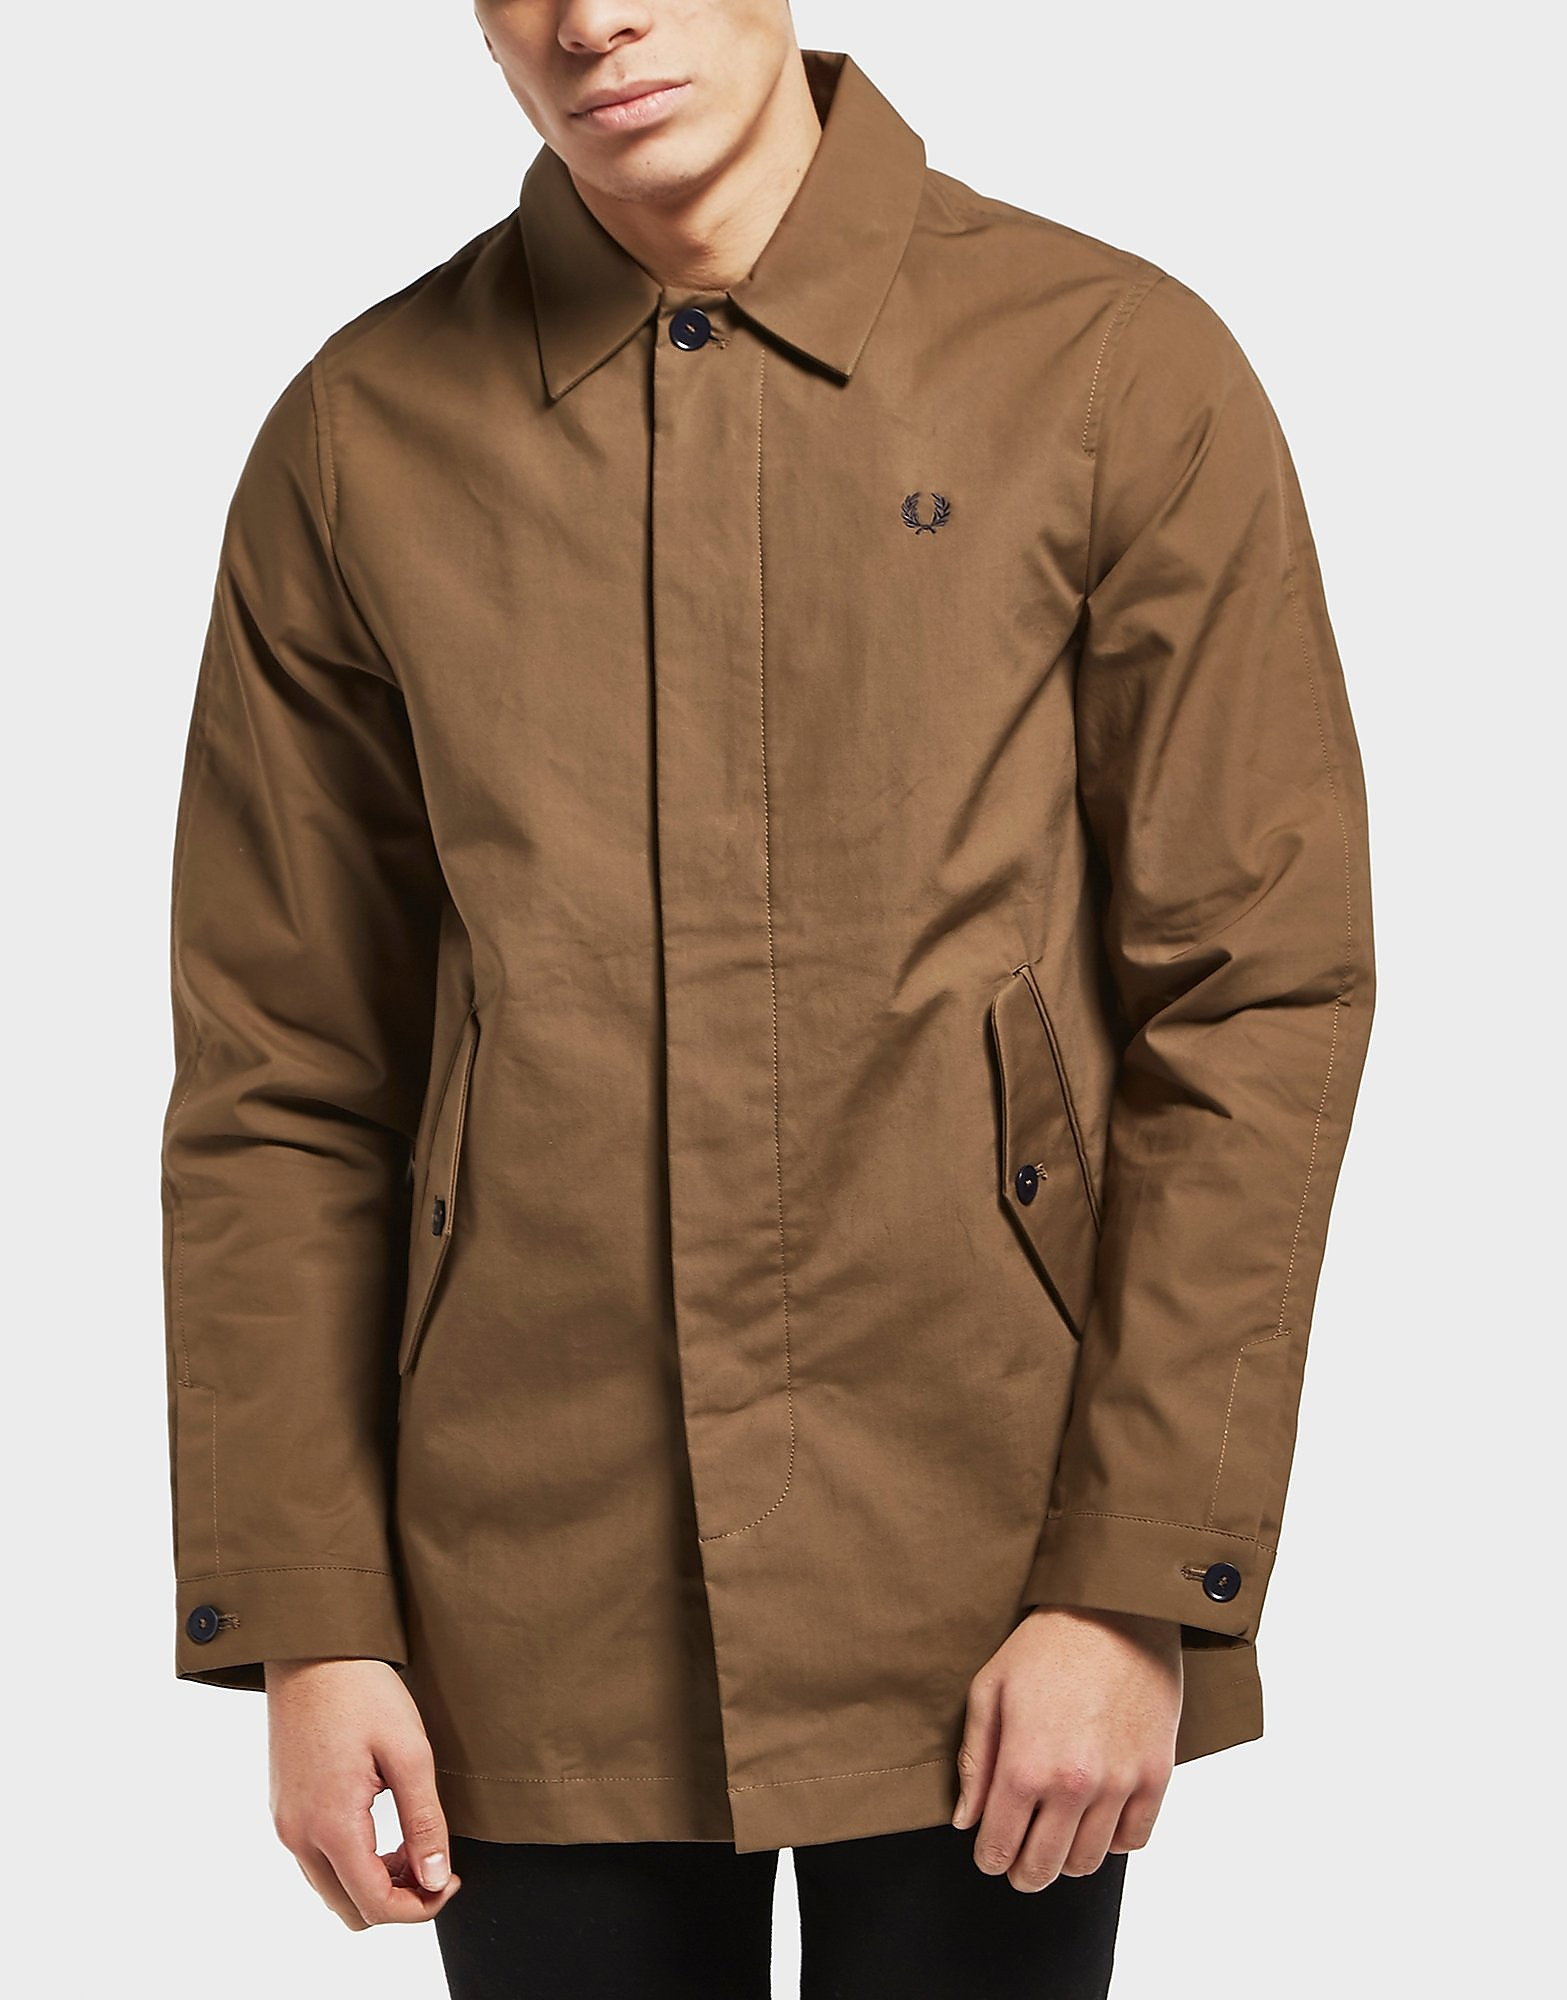 Fred Perry Caban Light Jacket